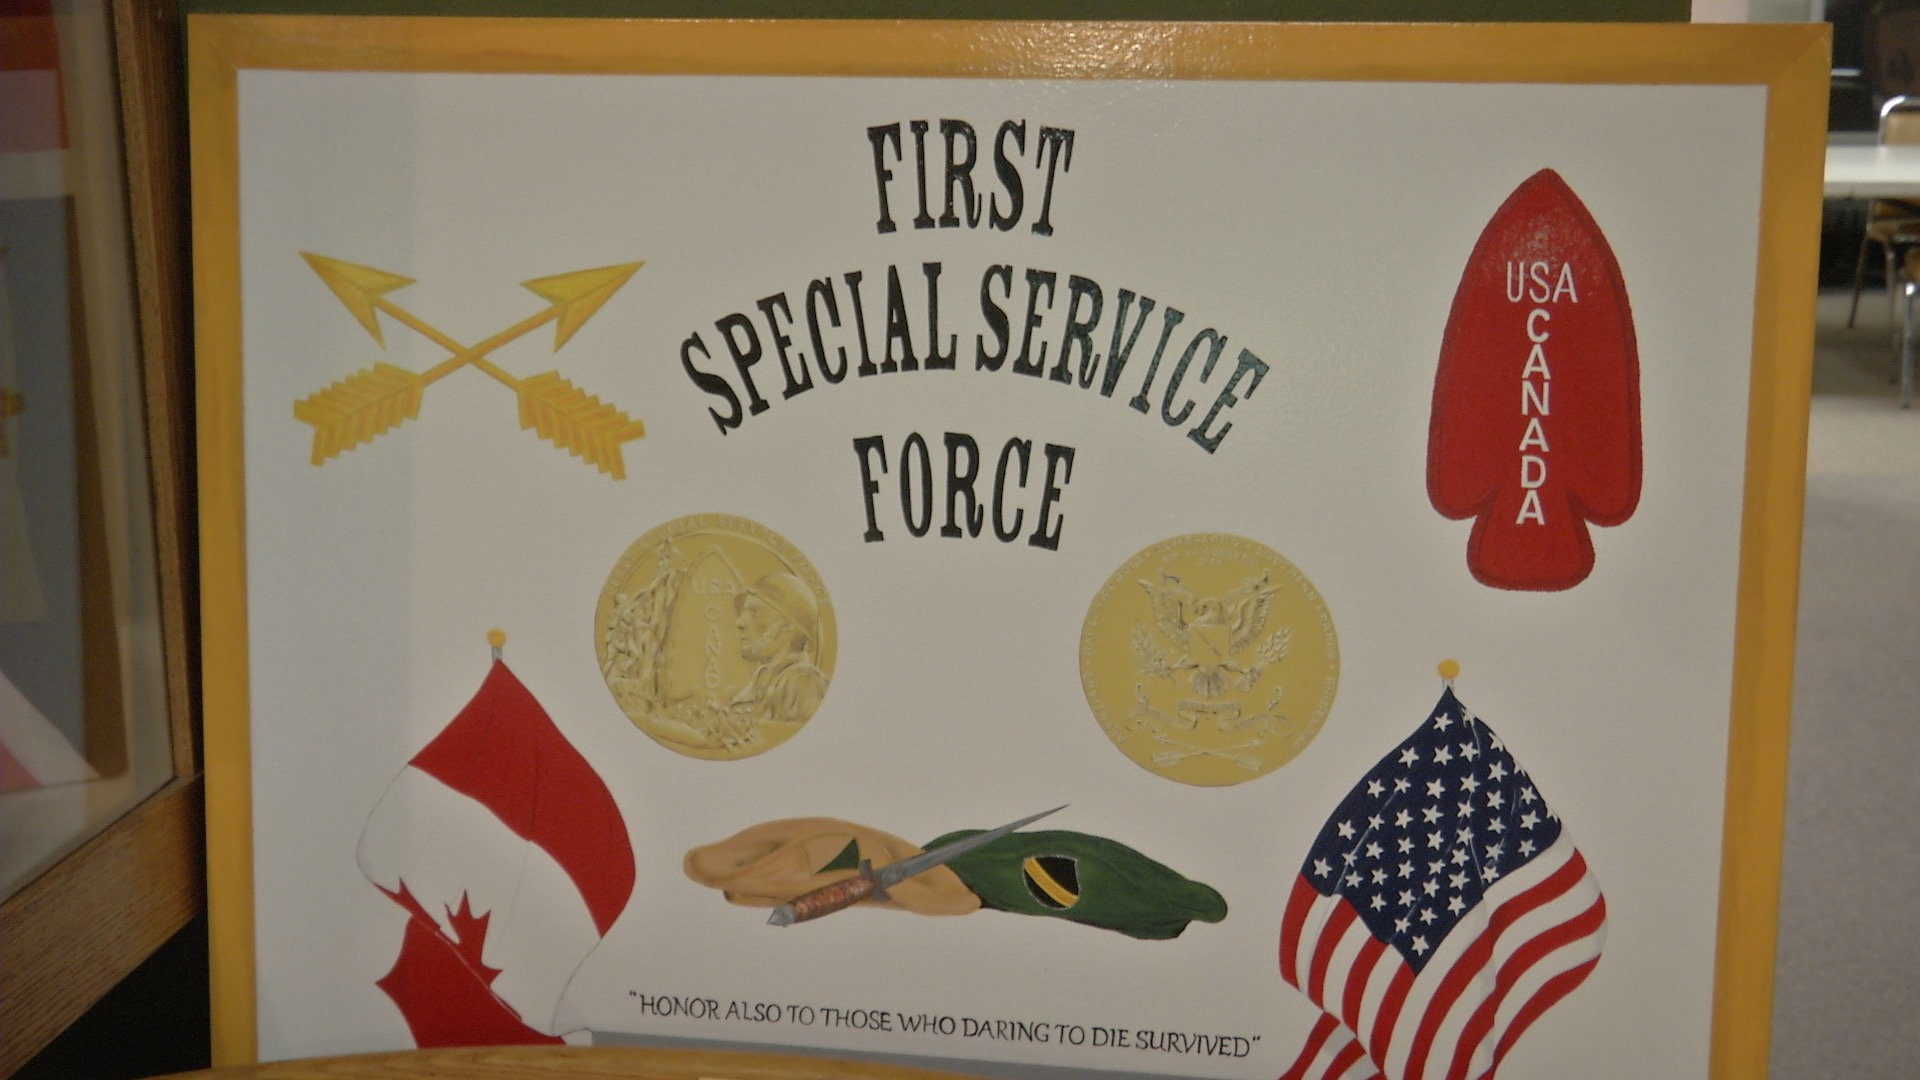 First Special Service Force